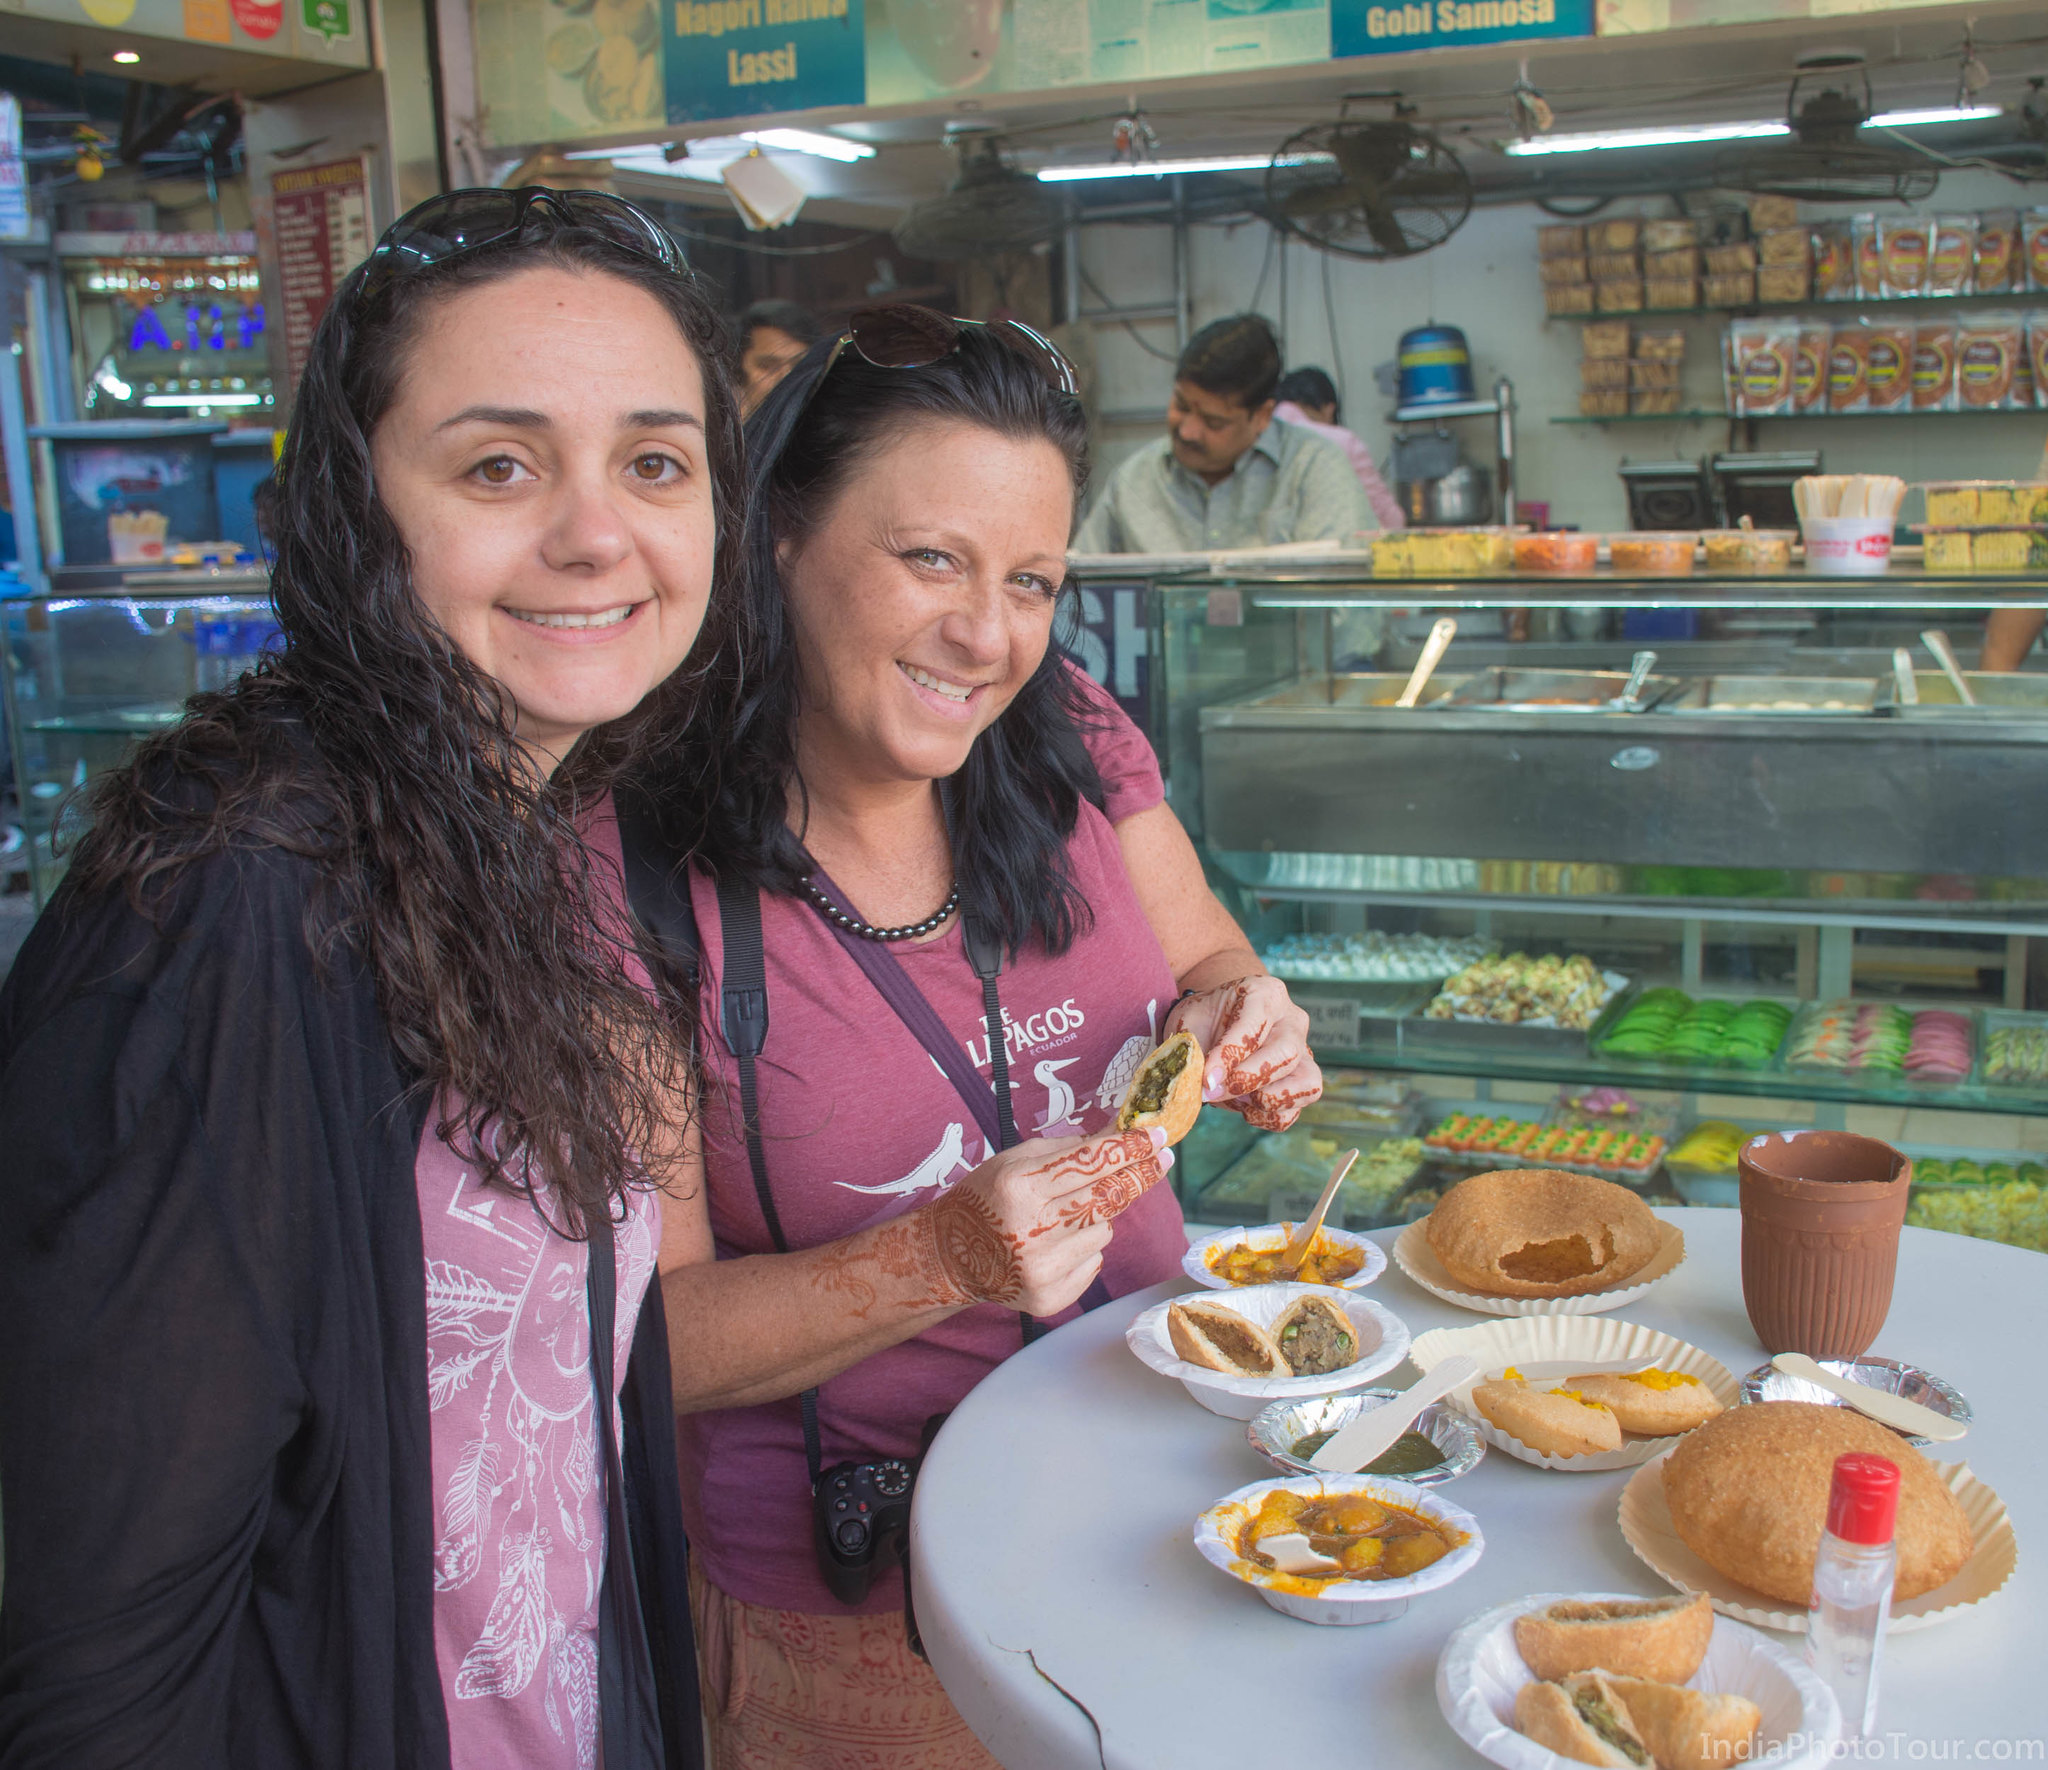 Starting with some street food in Old Delhi